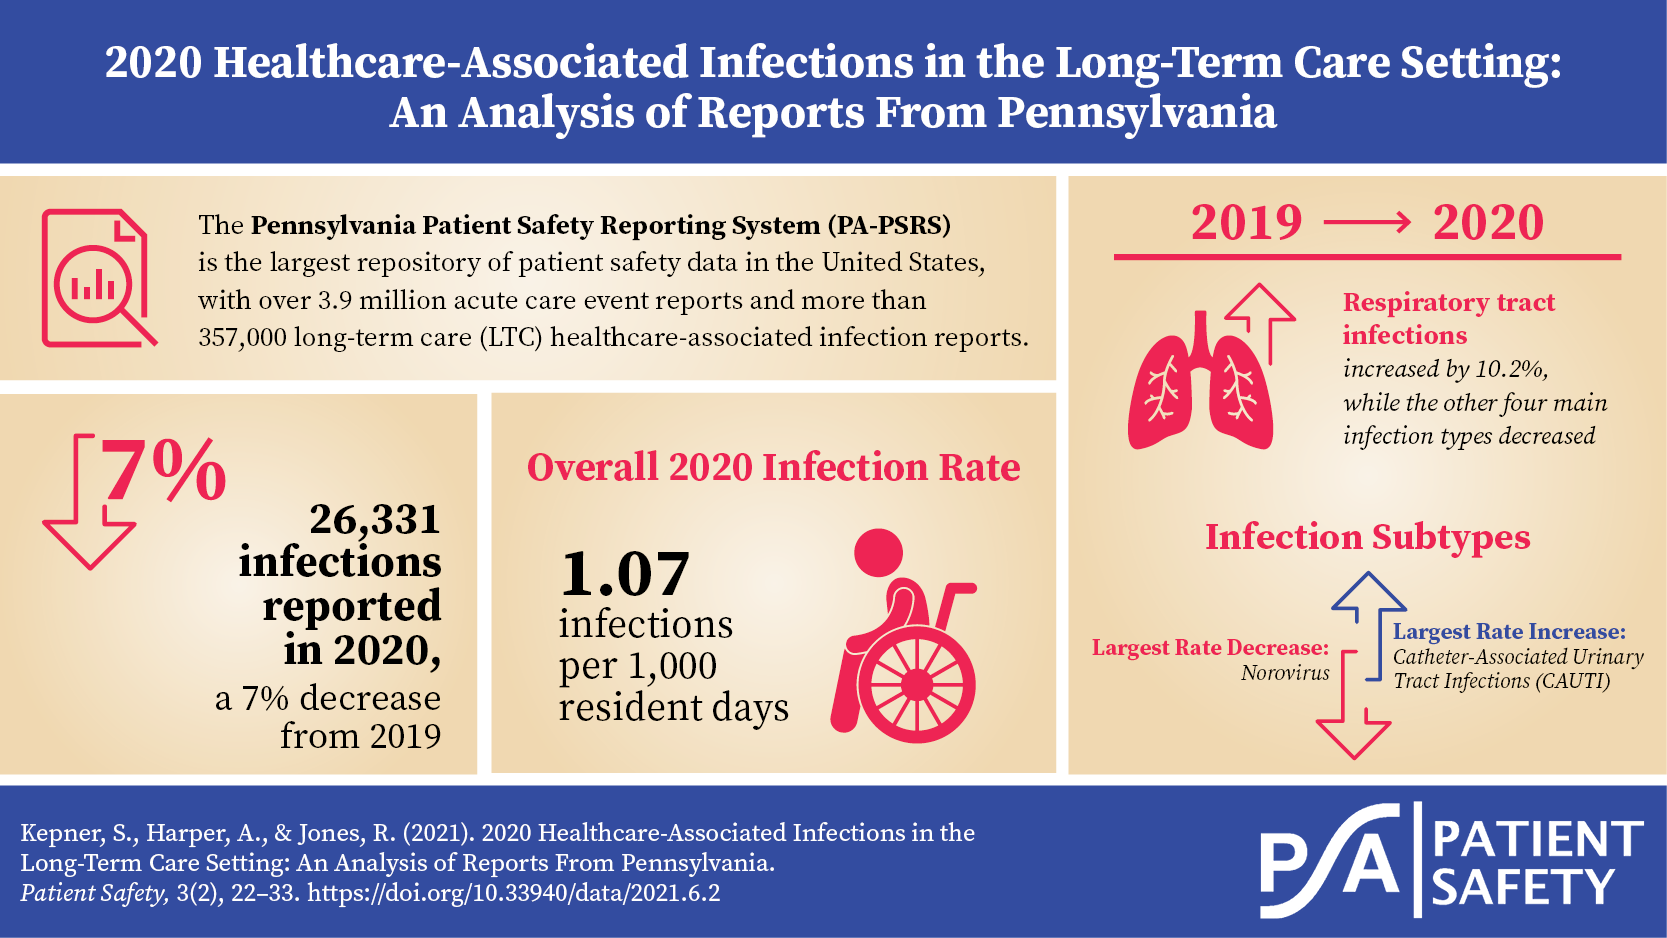 LTC Annual Report 2020 - visual abstract